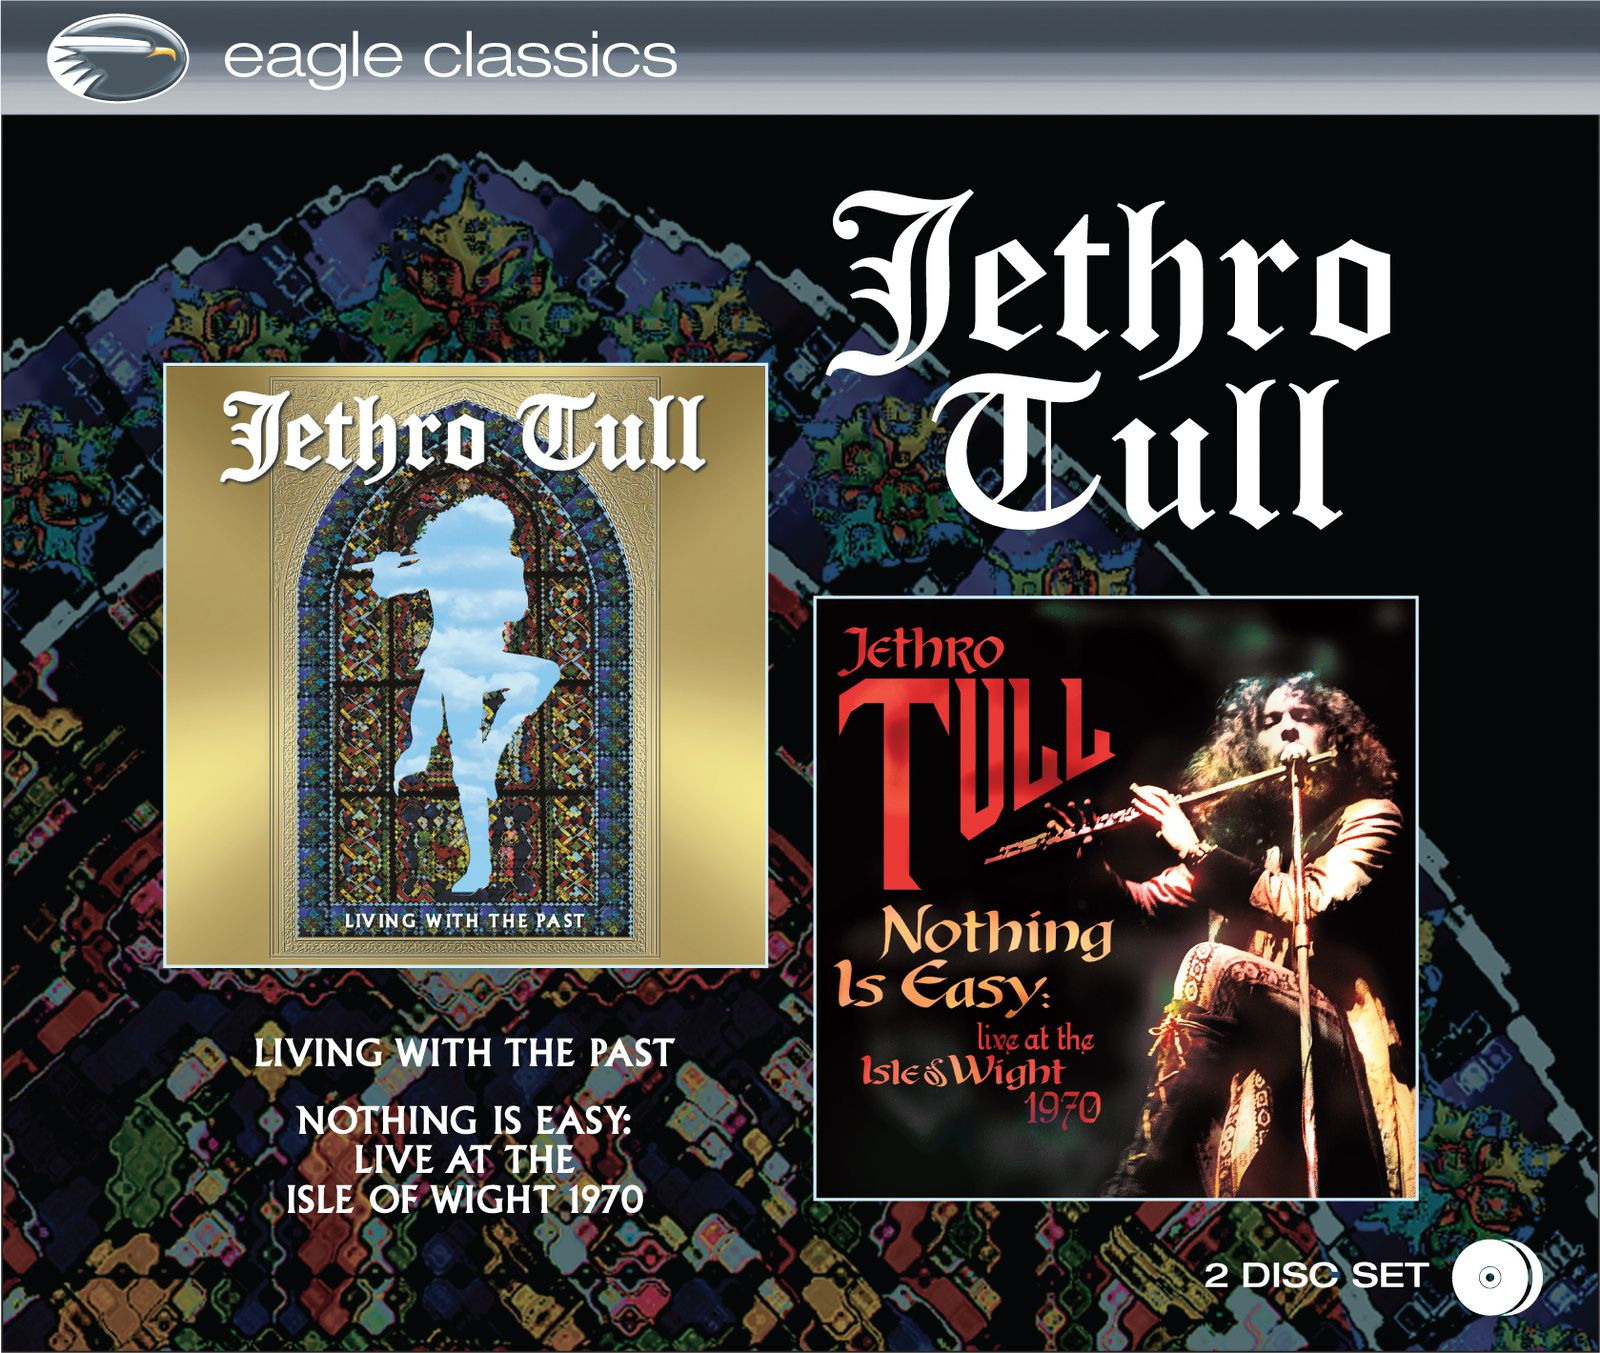 Re-releases from HEART, JETHRO TULL and PETER GREEN SPLINTER